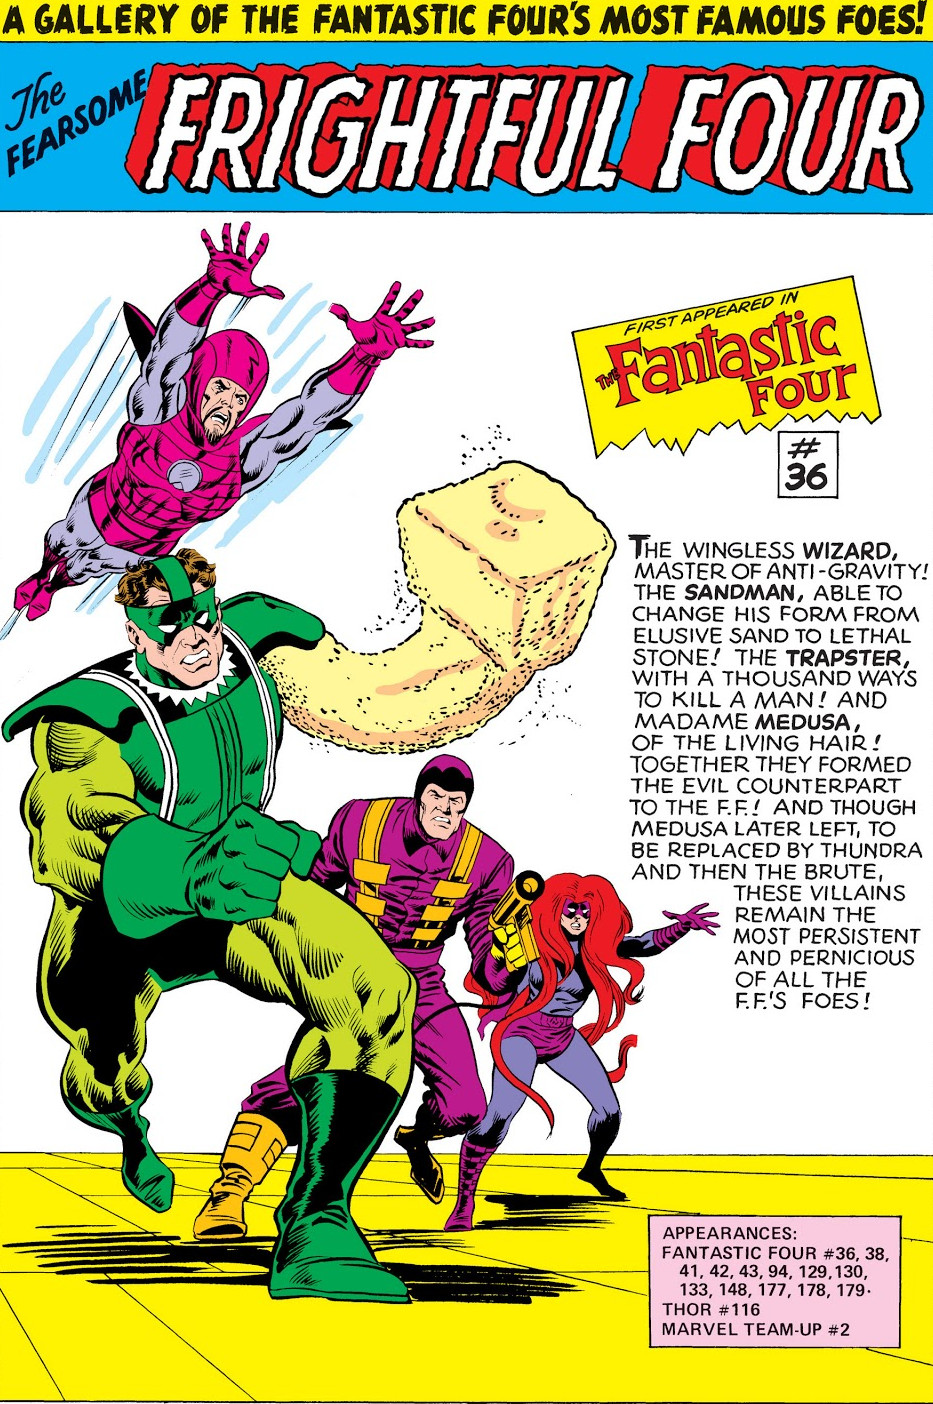 Frightful Four (Earth-616) from Fantastic Four Annual Vol 1 14 0001.jpg